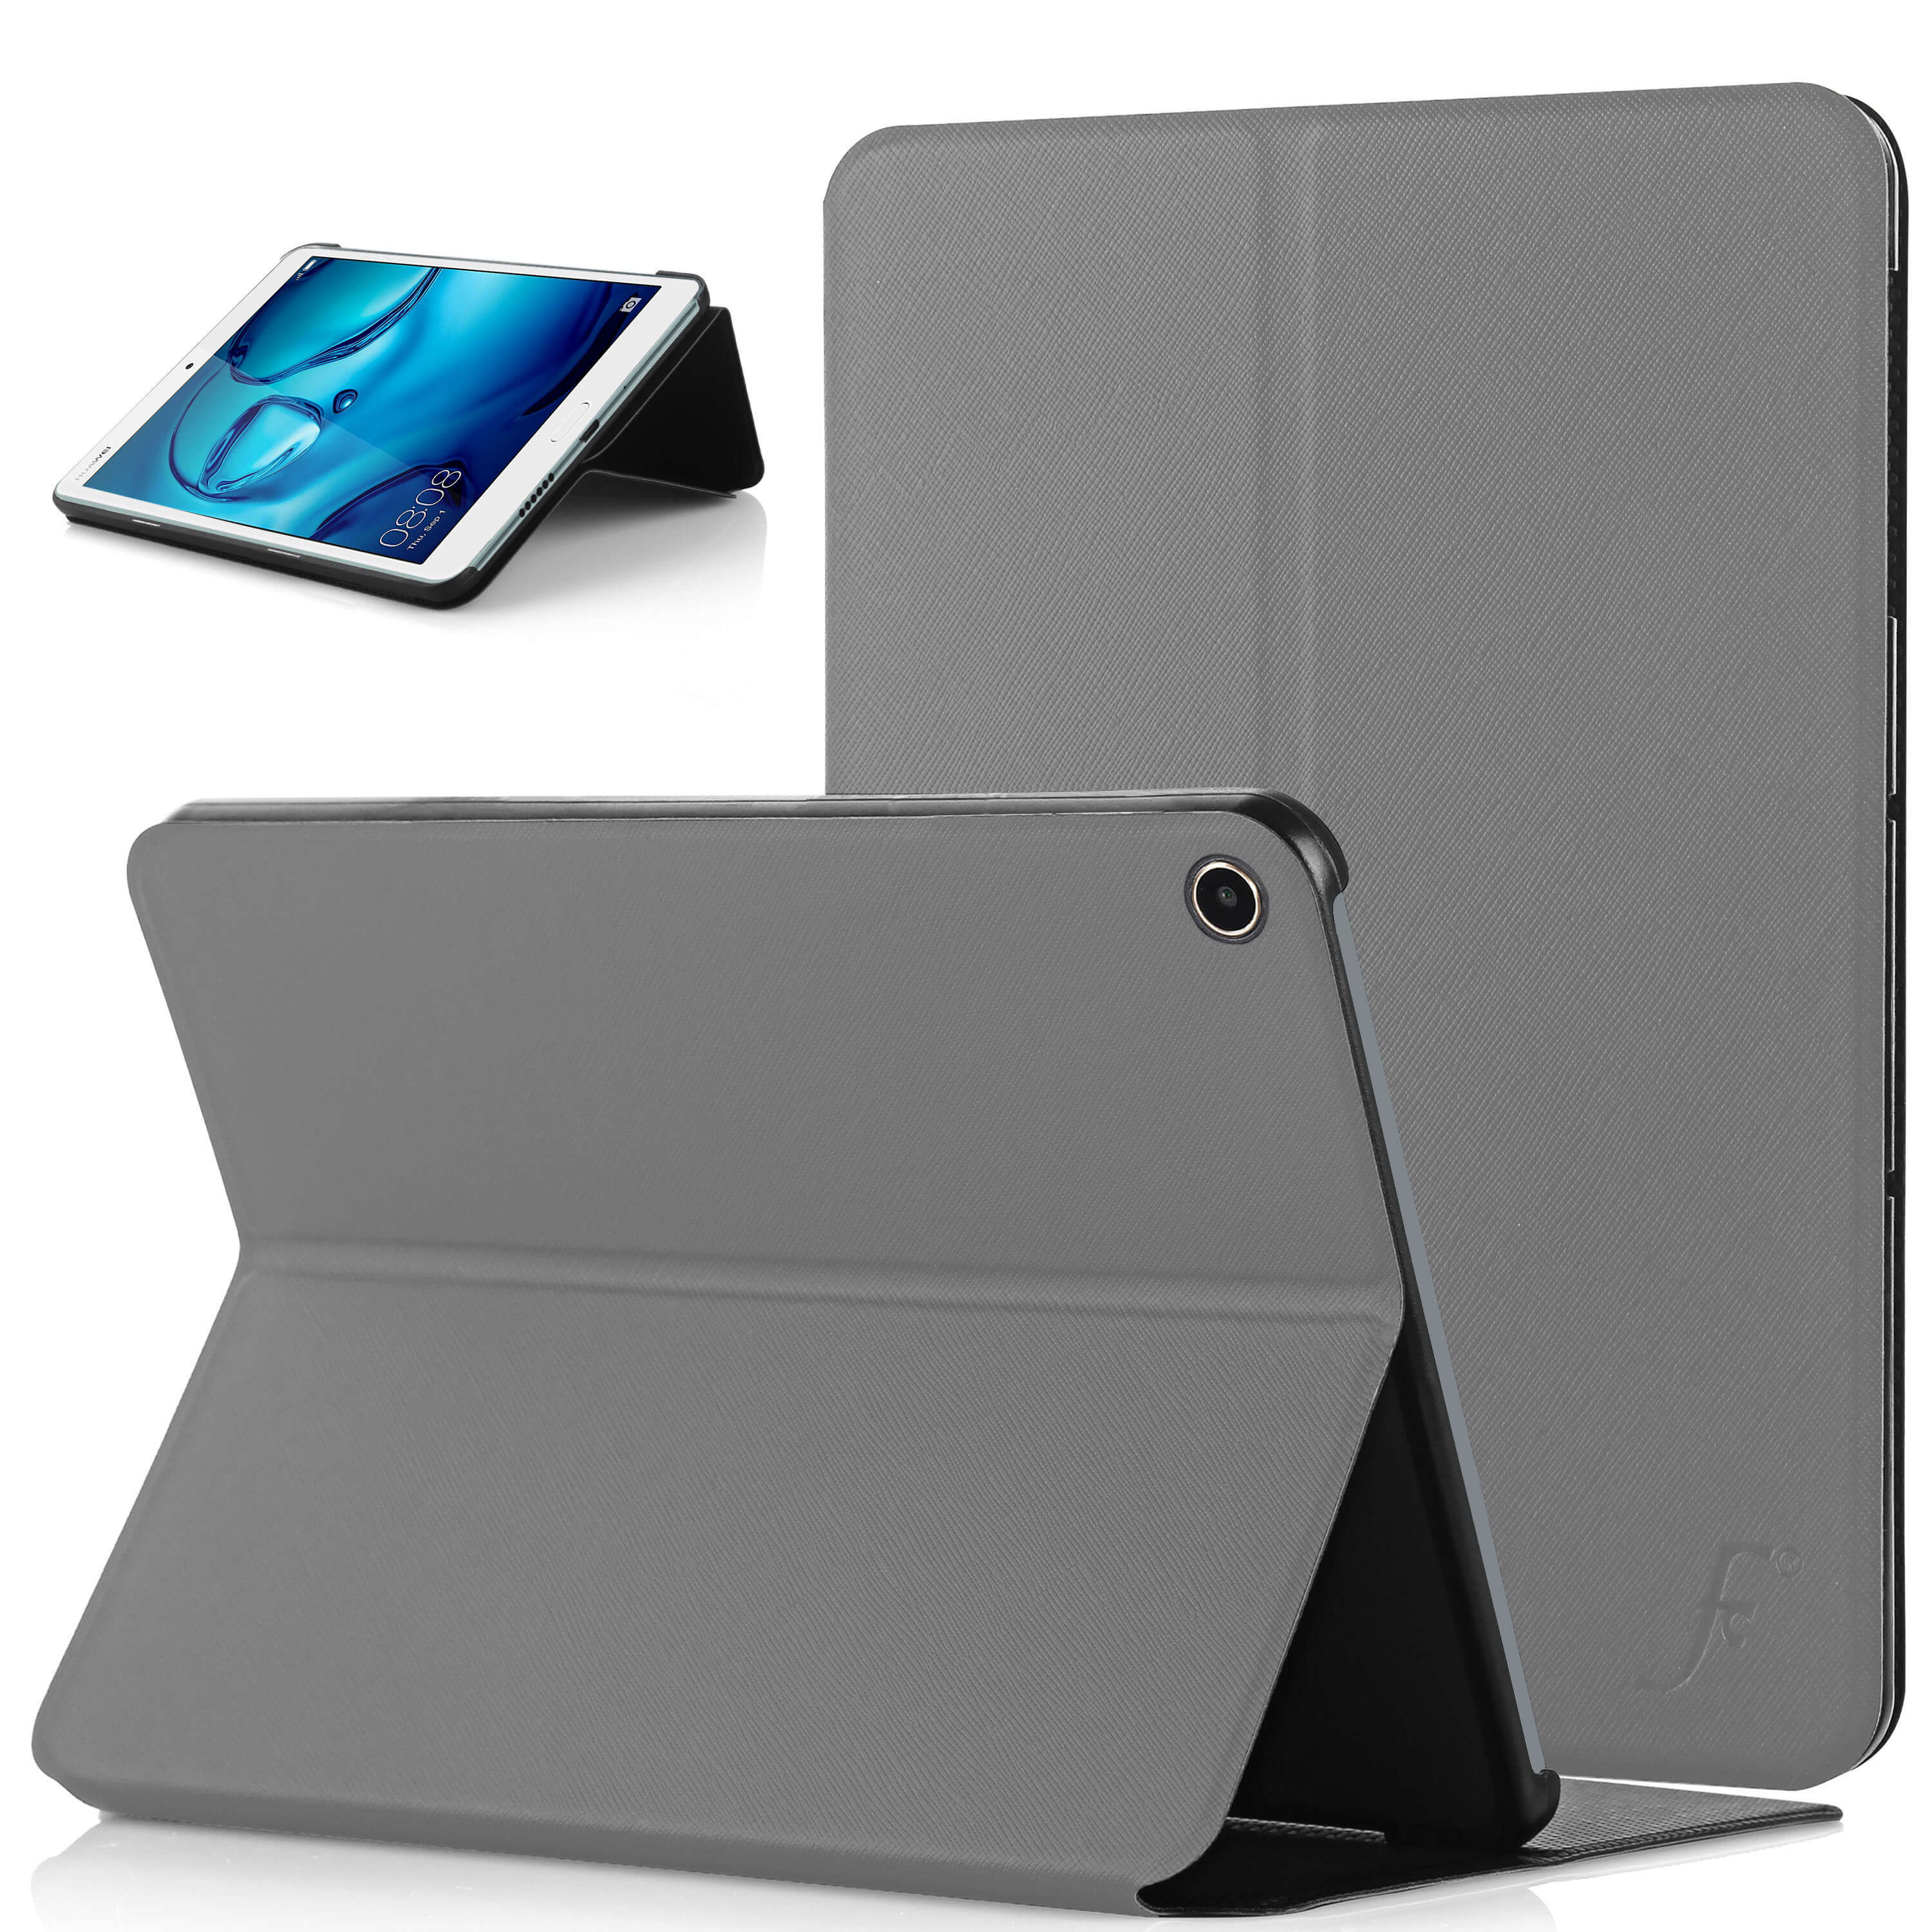 on sale aea53 fe0bb Forefront Cases® Huawei MediaPad M3 Lite 8 8-Inch Clam Shell Smart Case  Cover Stand (GREY)